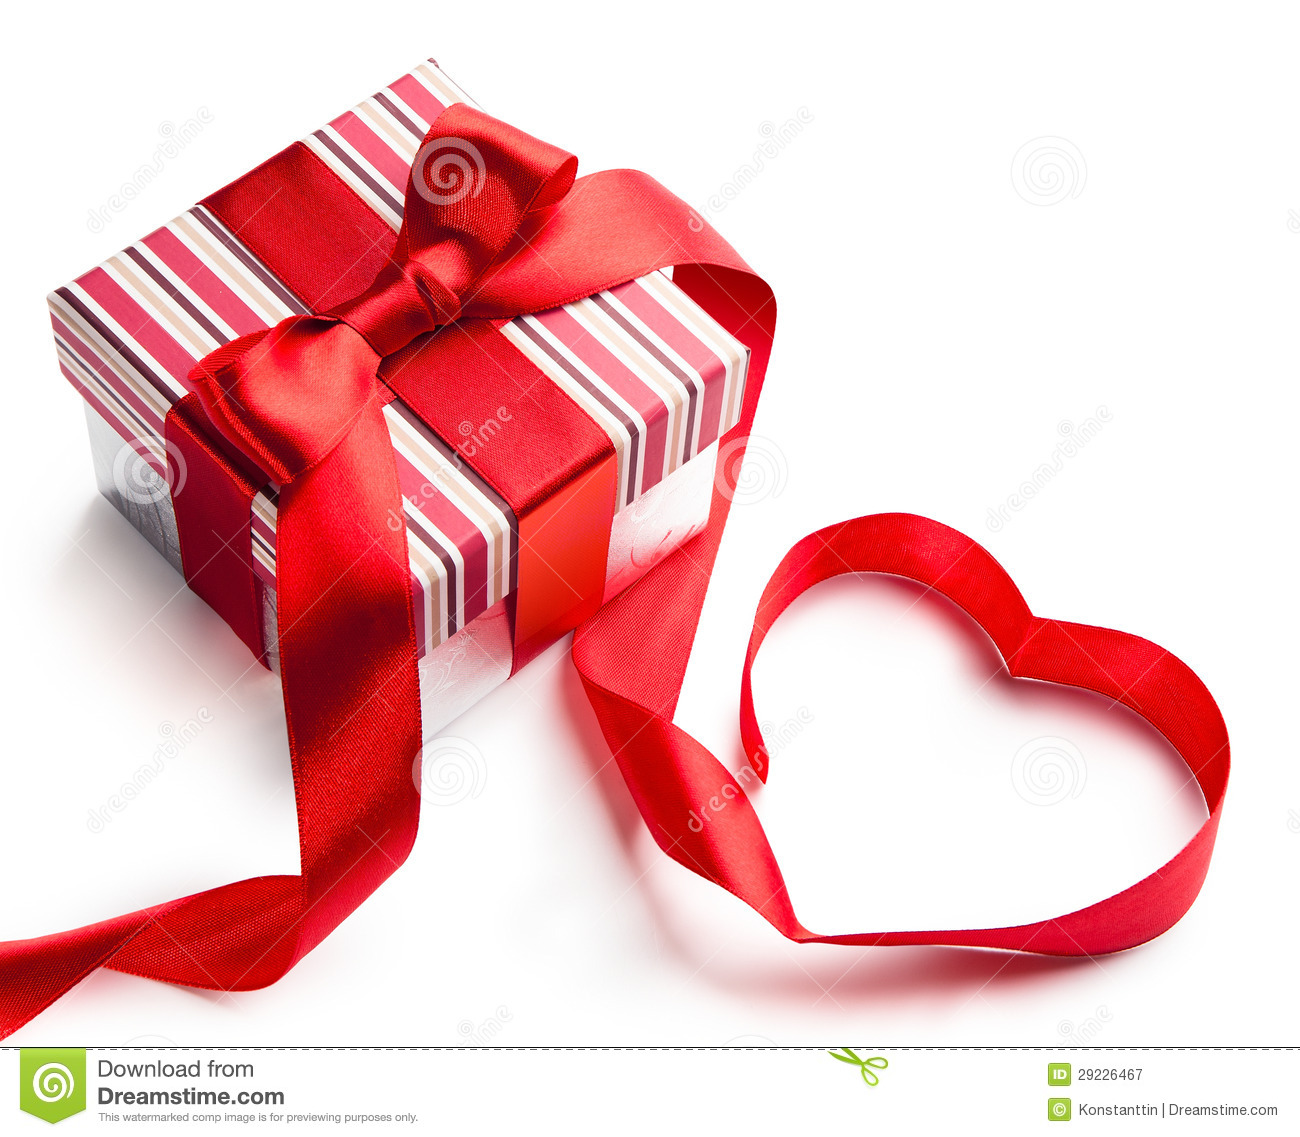 Art Valentine Day Gift Box On White Background